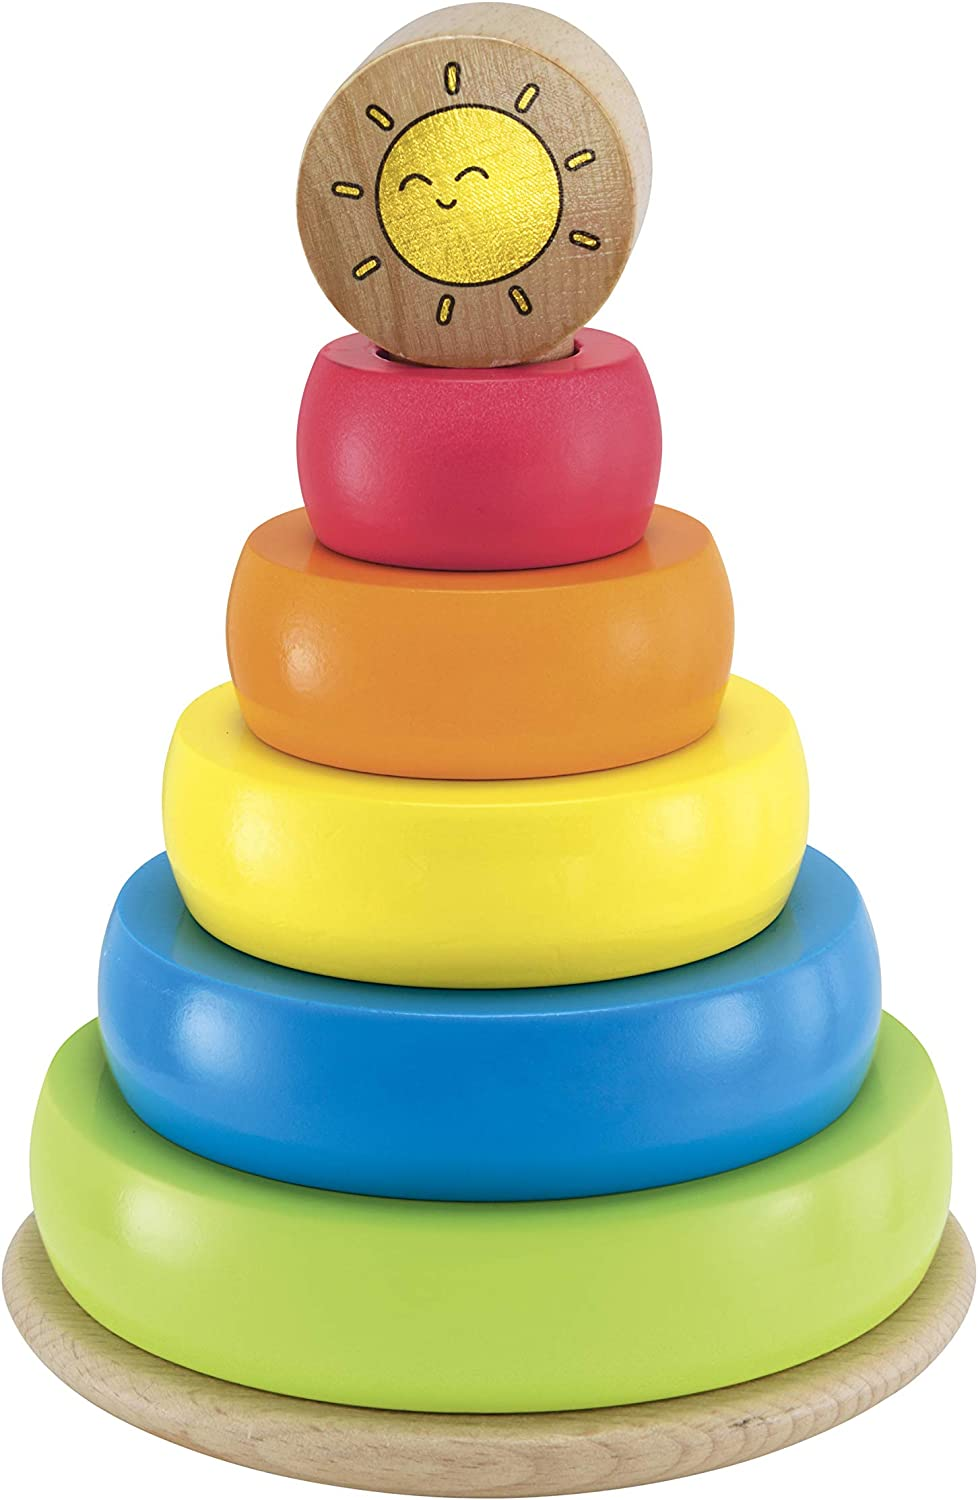 Exclusive Early Learning Centre Wooden Stacking Rings